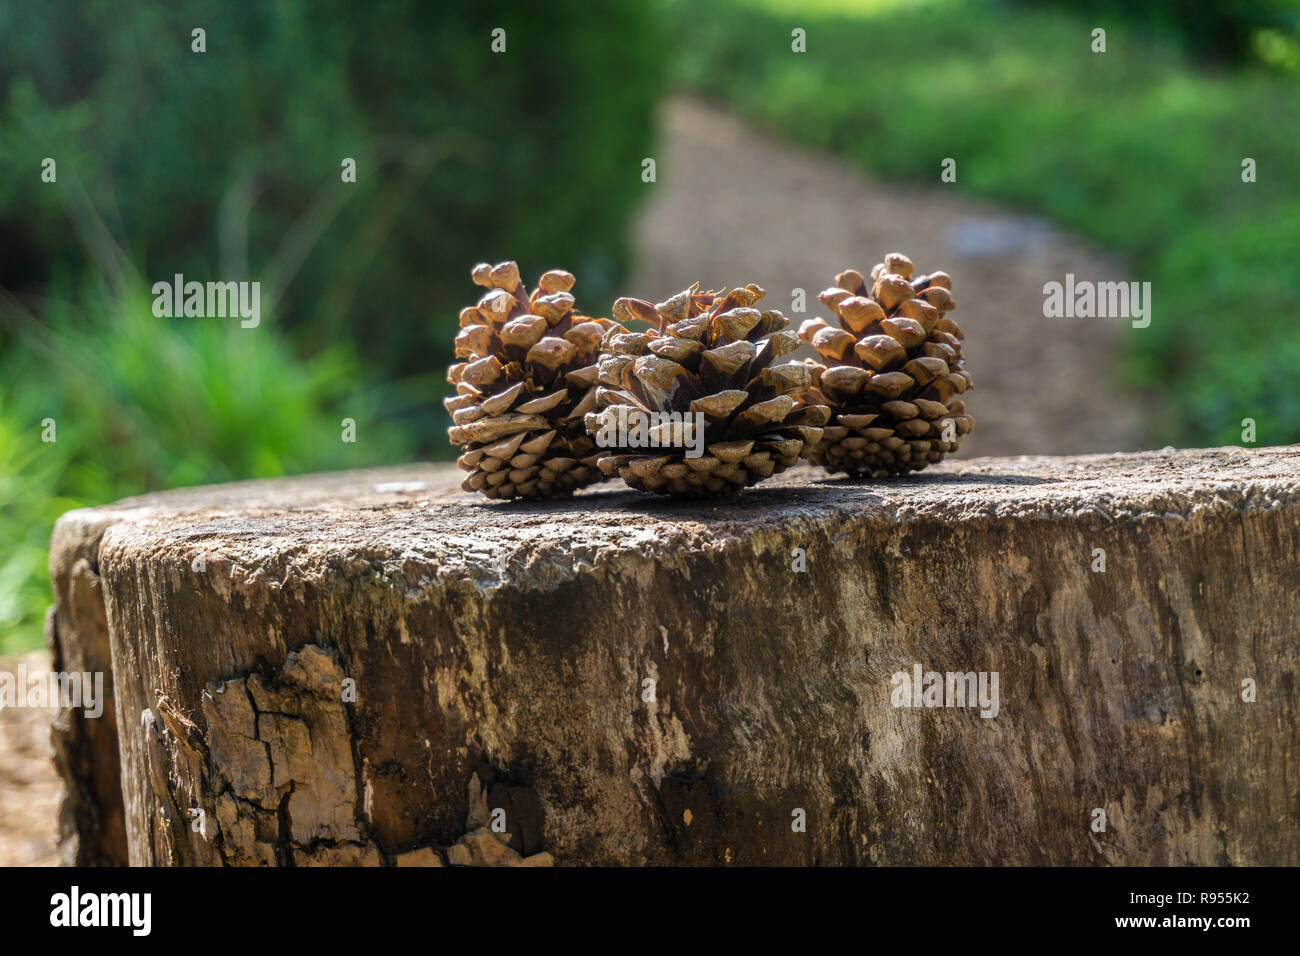 Close-up of a brown Pine cone on the forest floor. - Stock Image